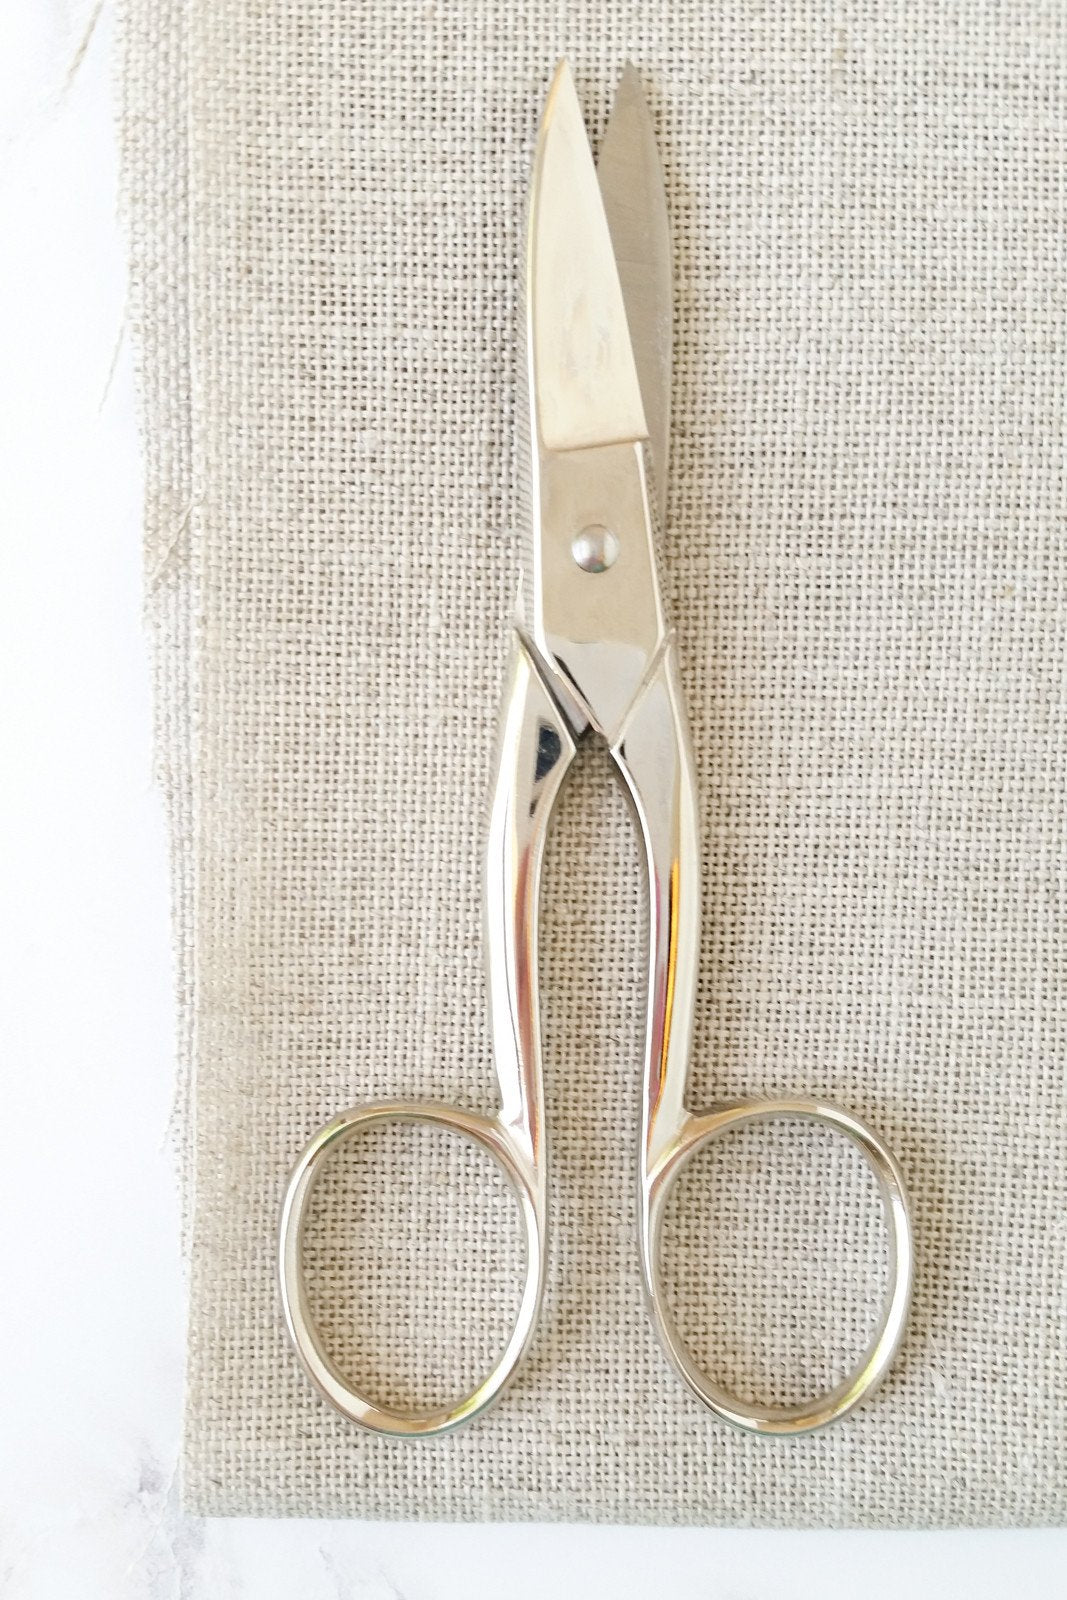 Dovo Long Handled Embroidery Scissors